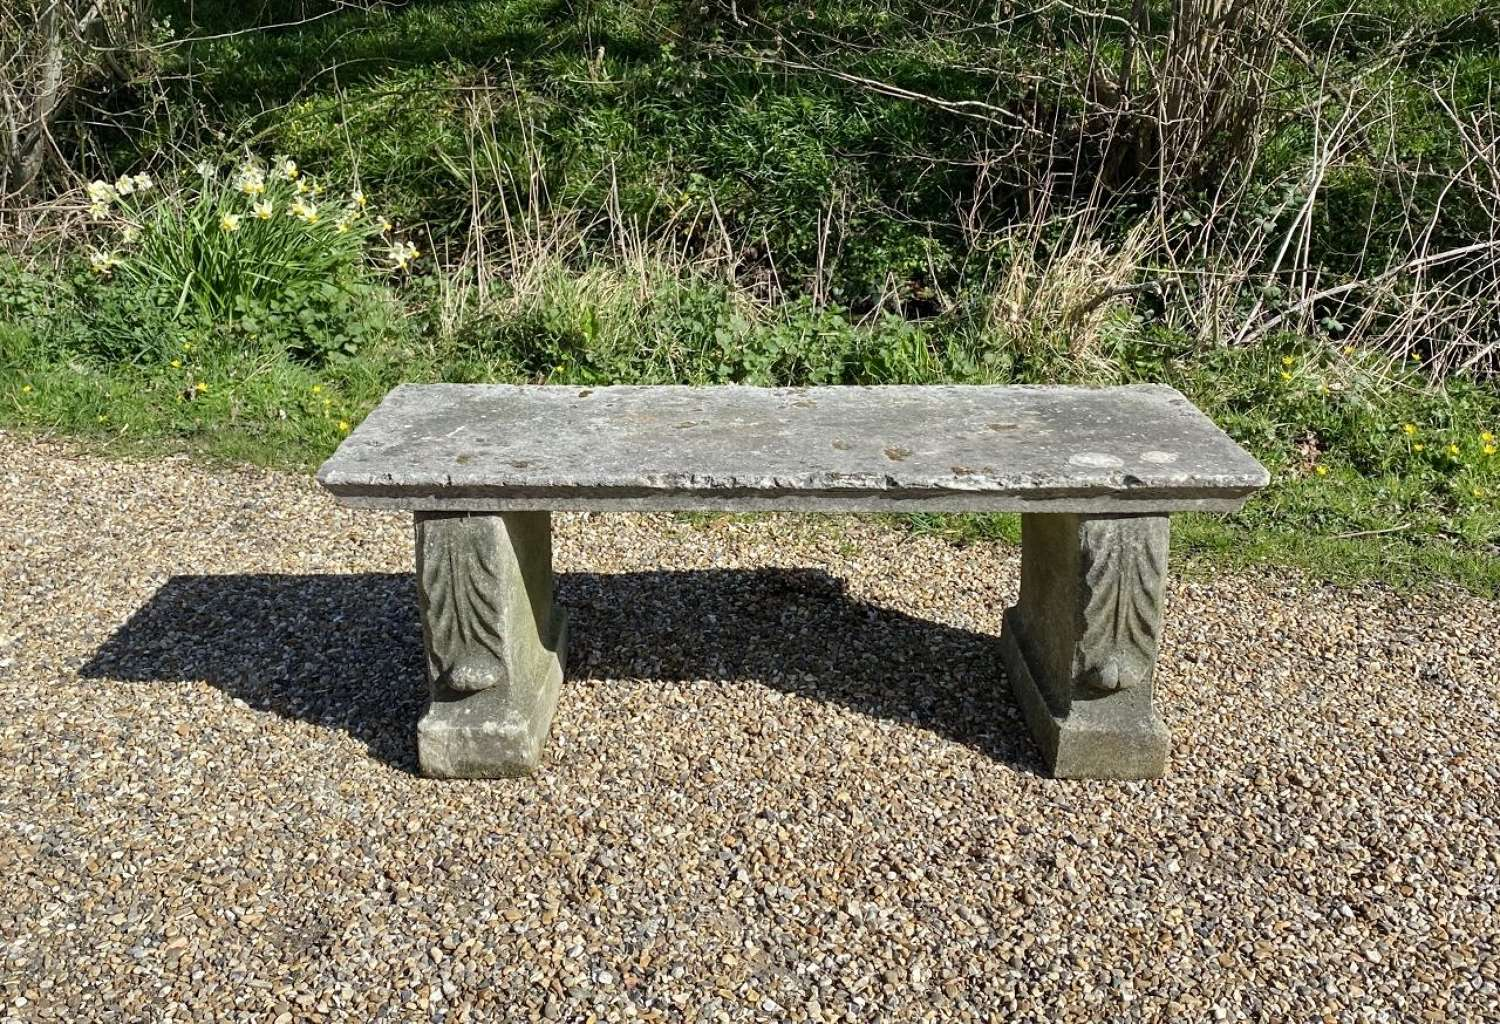 Simple Stone Bench with Leaf Decoration